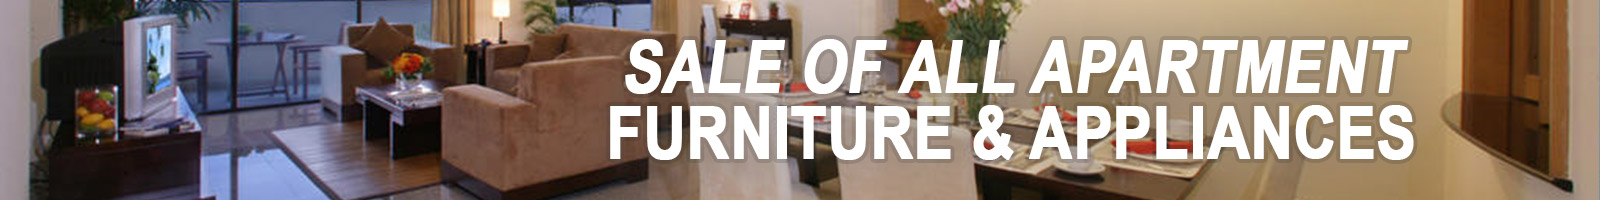 apartment furniture and appliances